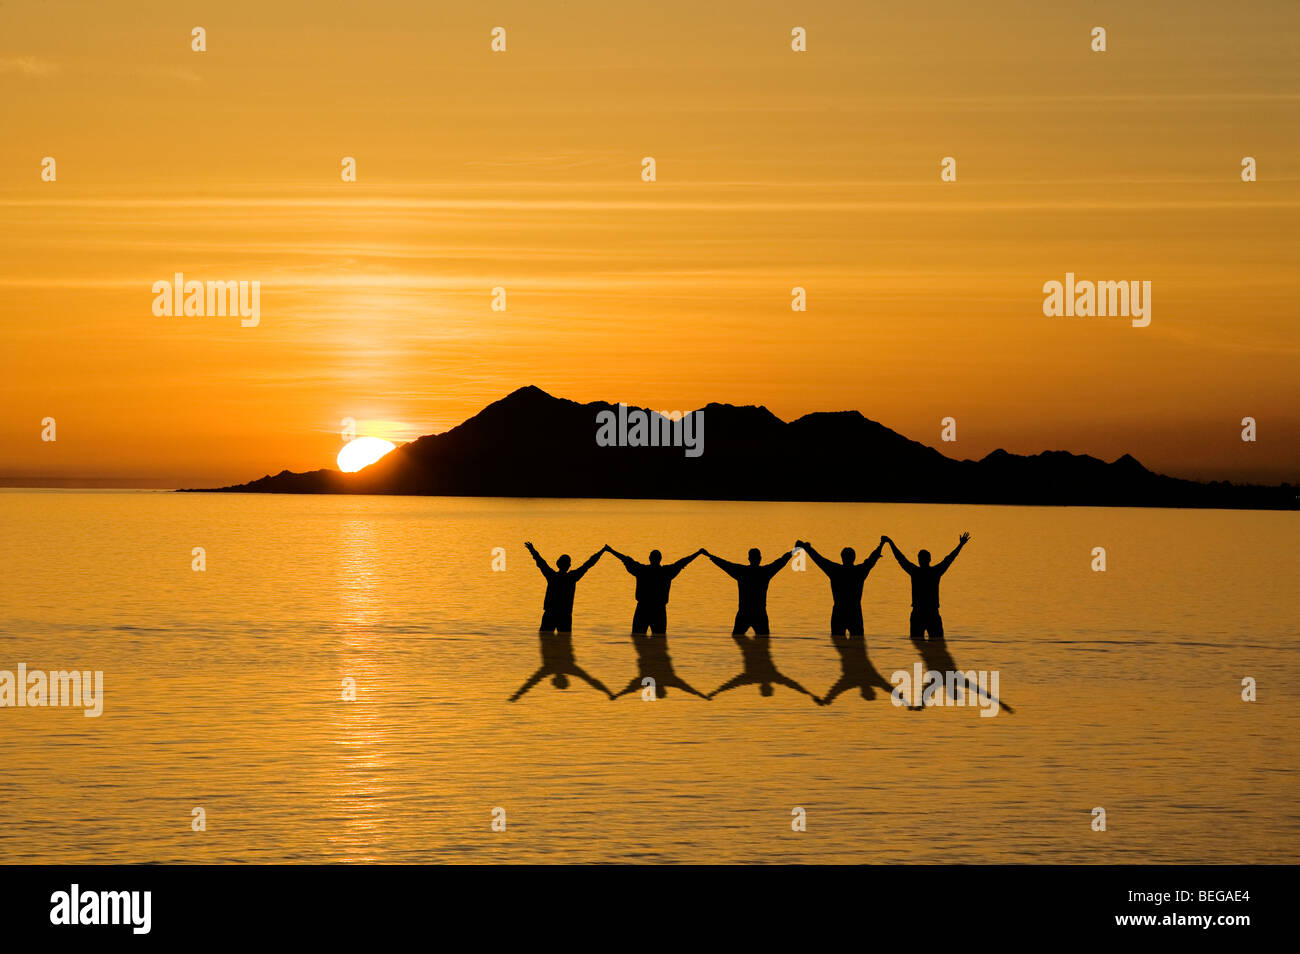 Reflection of friends celebrating in the ocean. - Stock Image